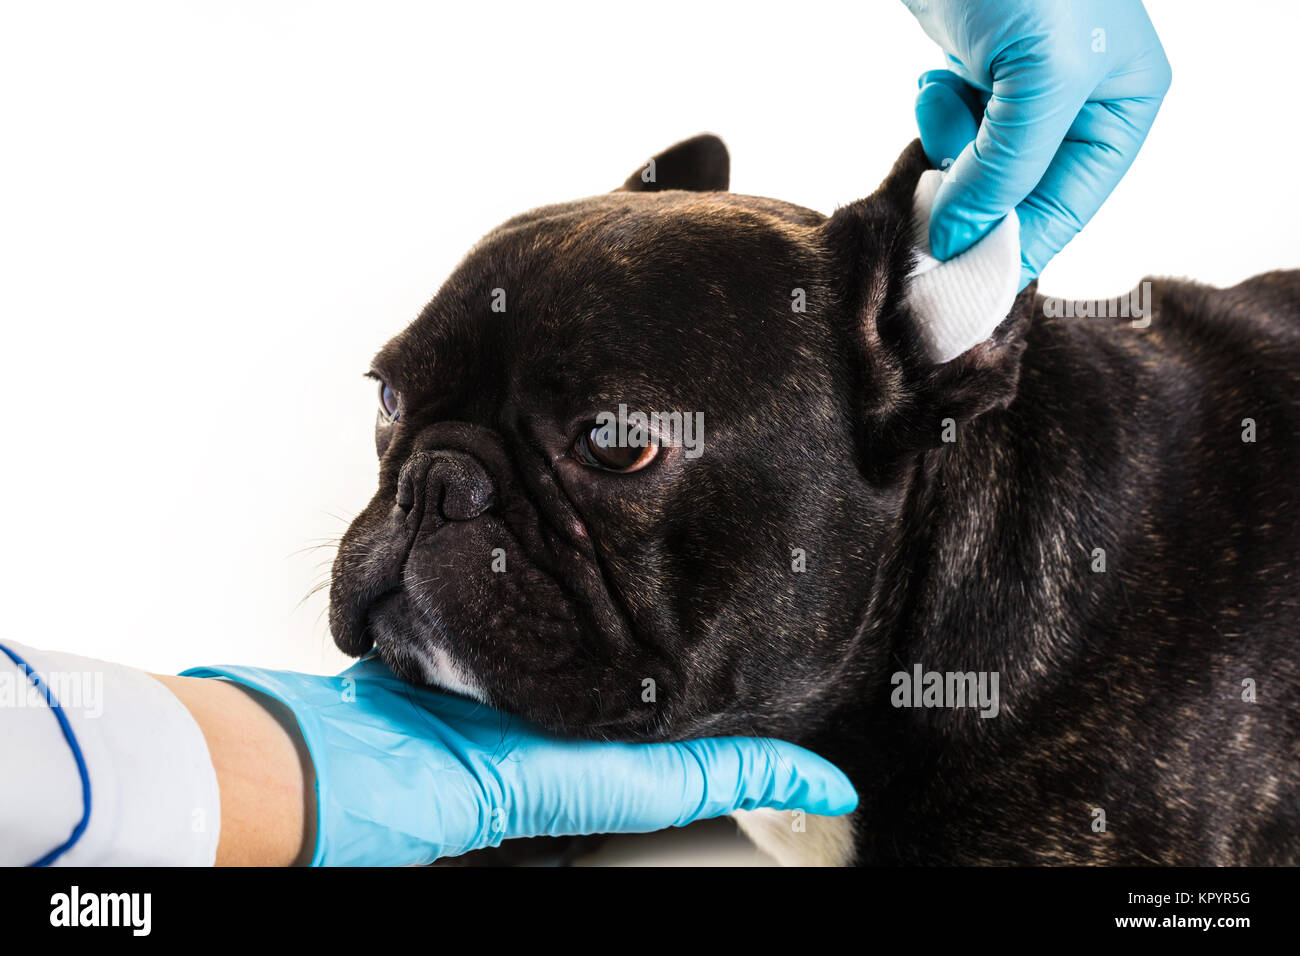 Veterinary clinic with a French bulldog making a cleaning ears - Stock Image